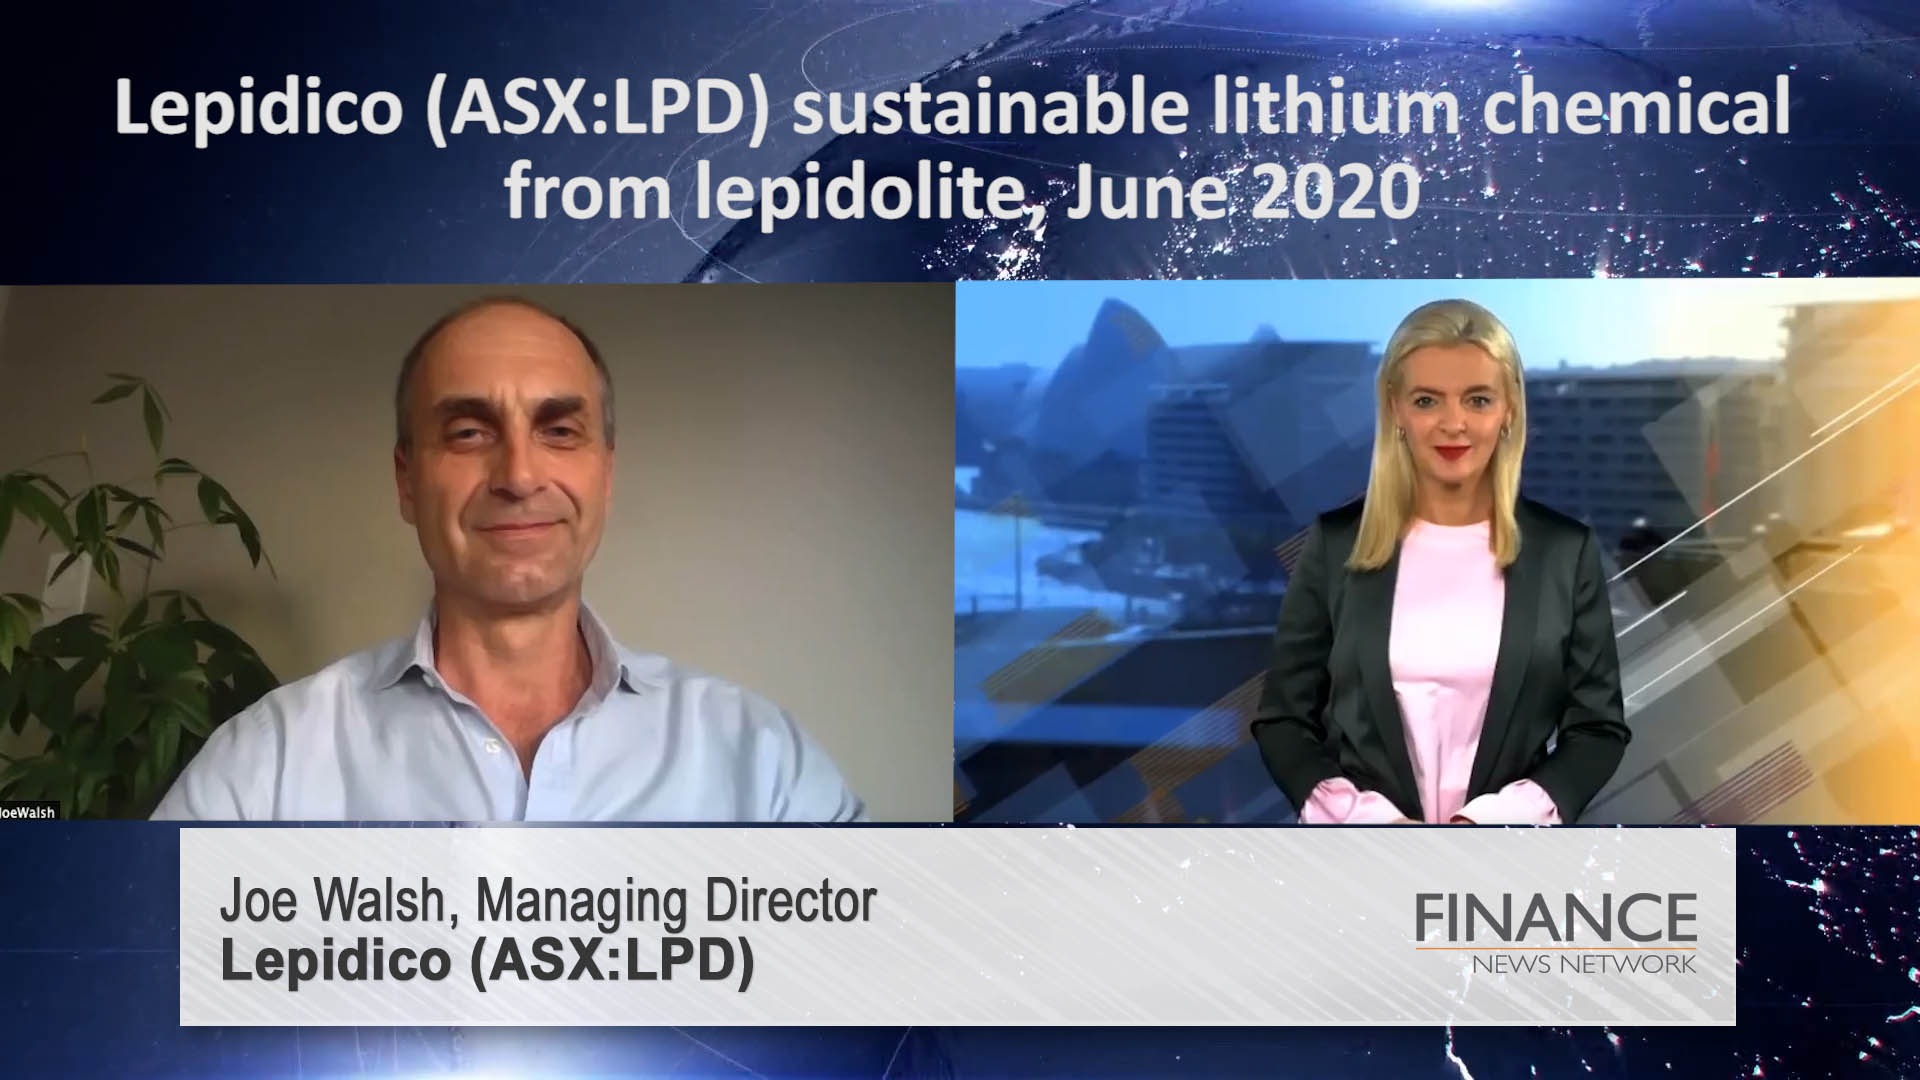 Lepidico (ASX:LPD) sustainable lithium chemical from lepidolite